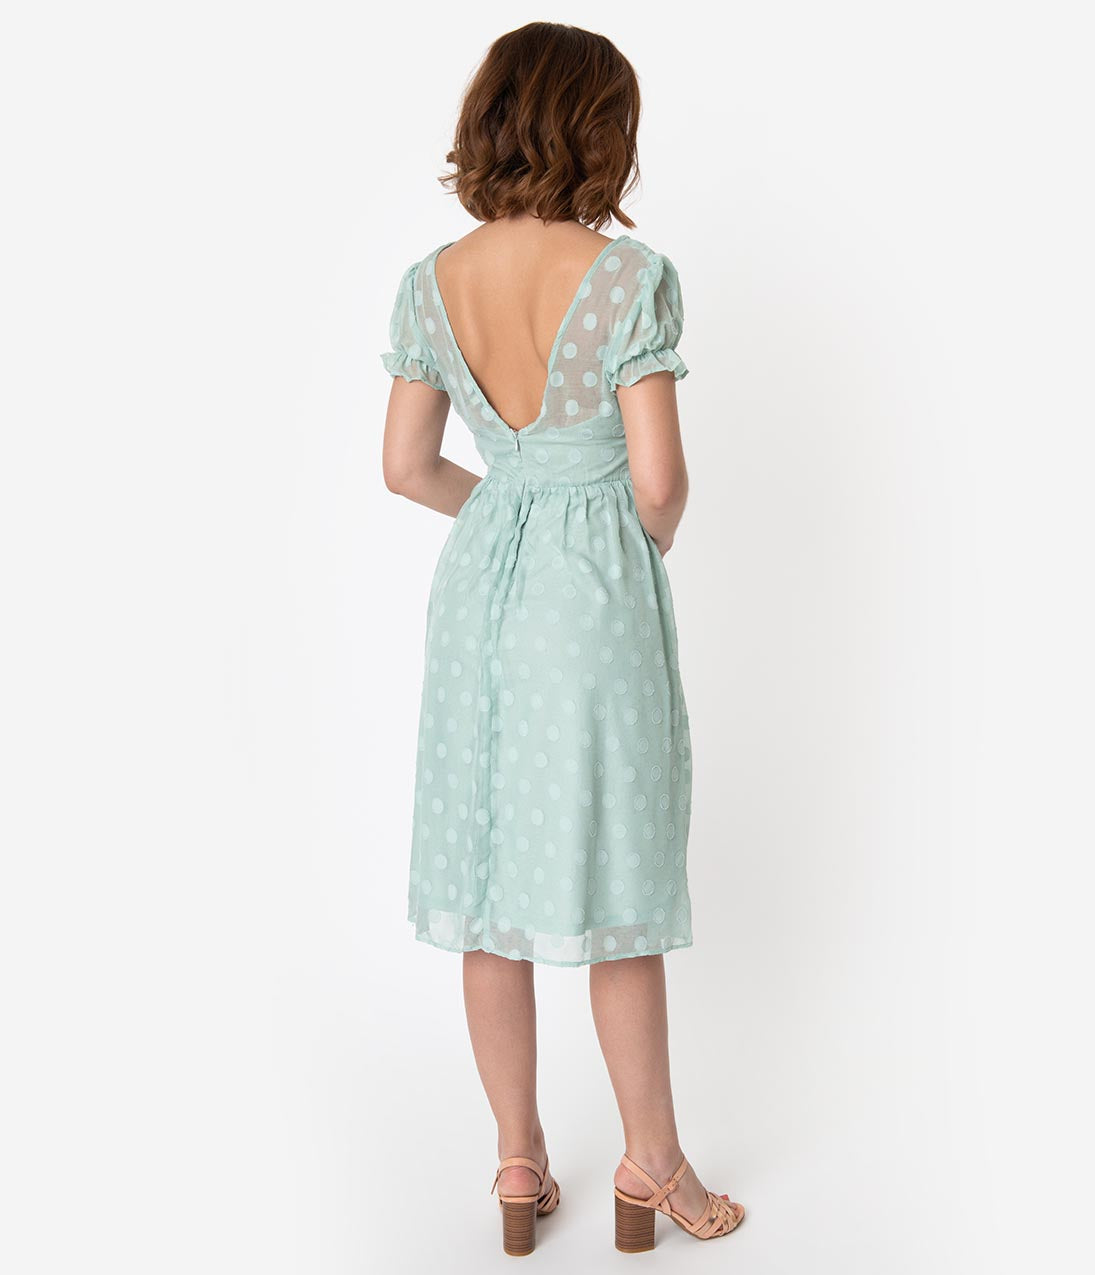 Vintage Dresses - Retro   Vintage-Inspired Dresses – Unique Vintage fc5855303bf4